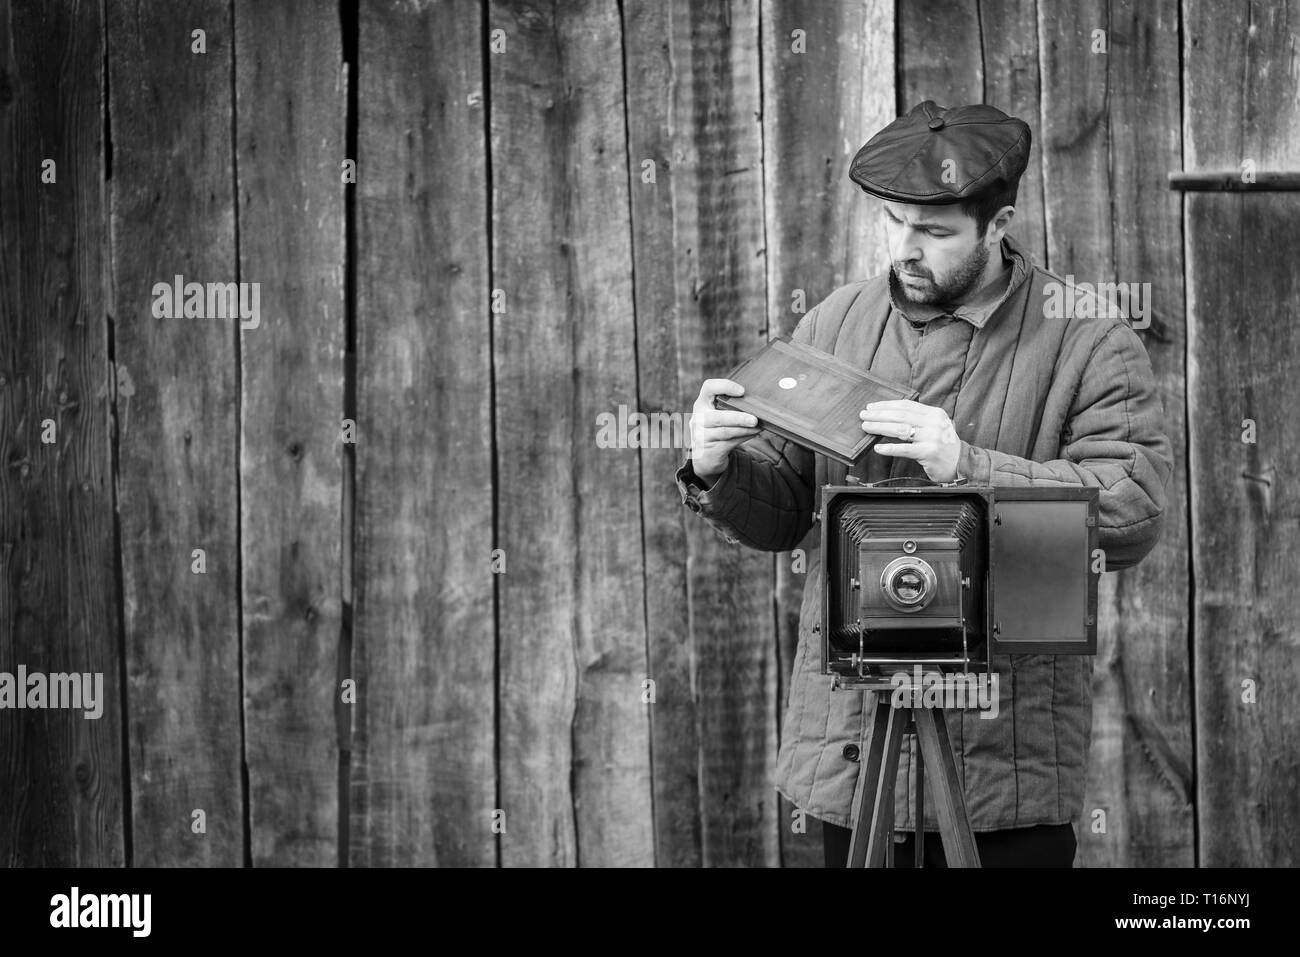 Photographer prepares for shooting and inserts film holder into retro large format camera. Concept - photography of the 1930s-1950s, monochrome effect - Stock Image